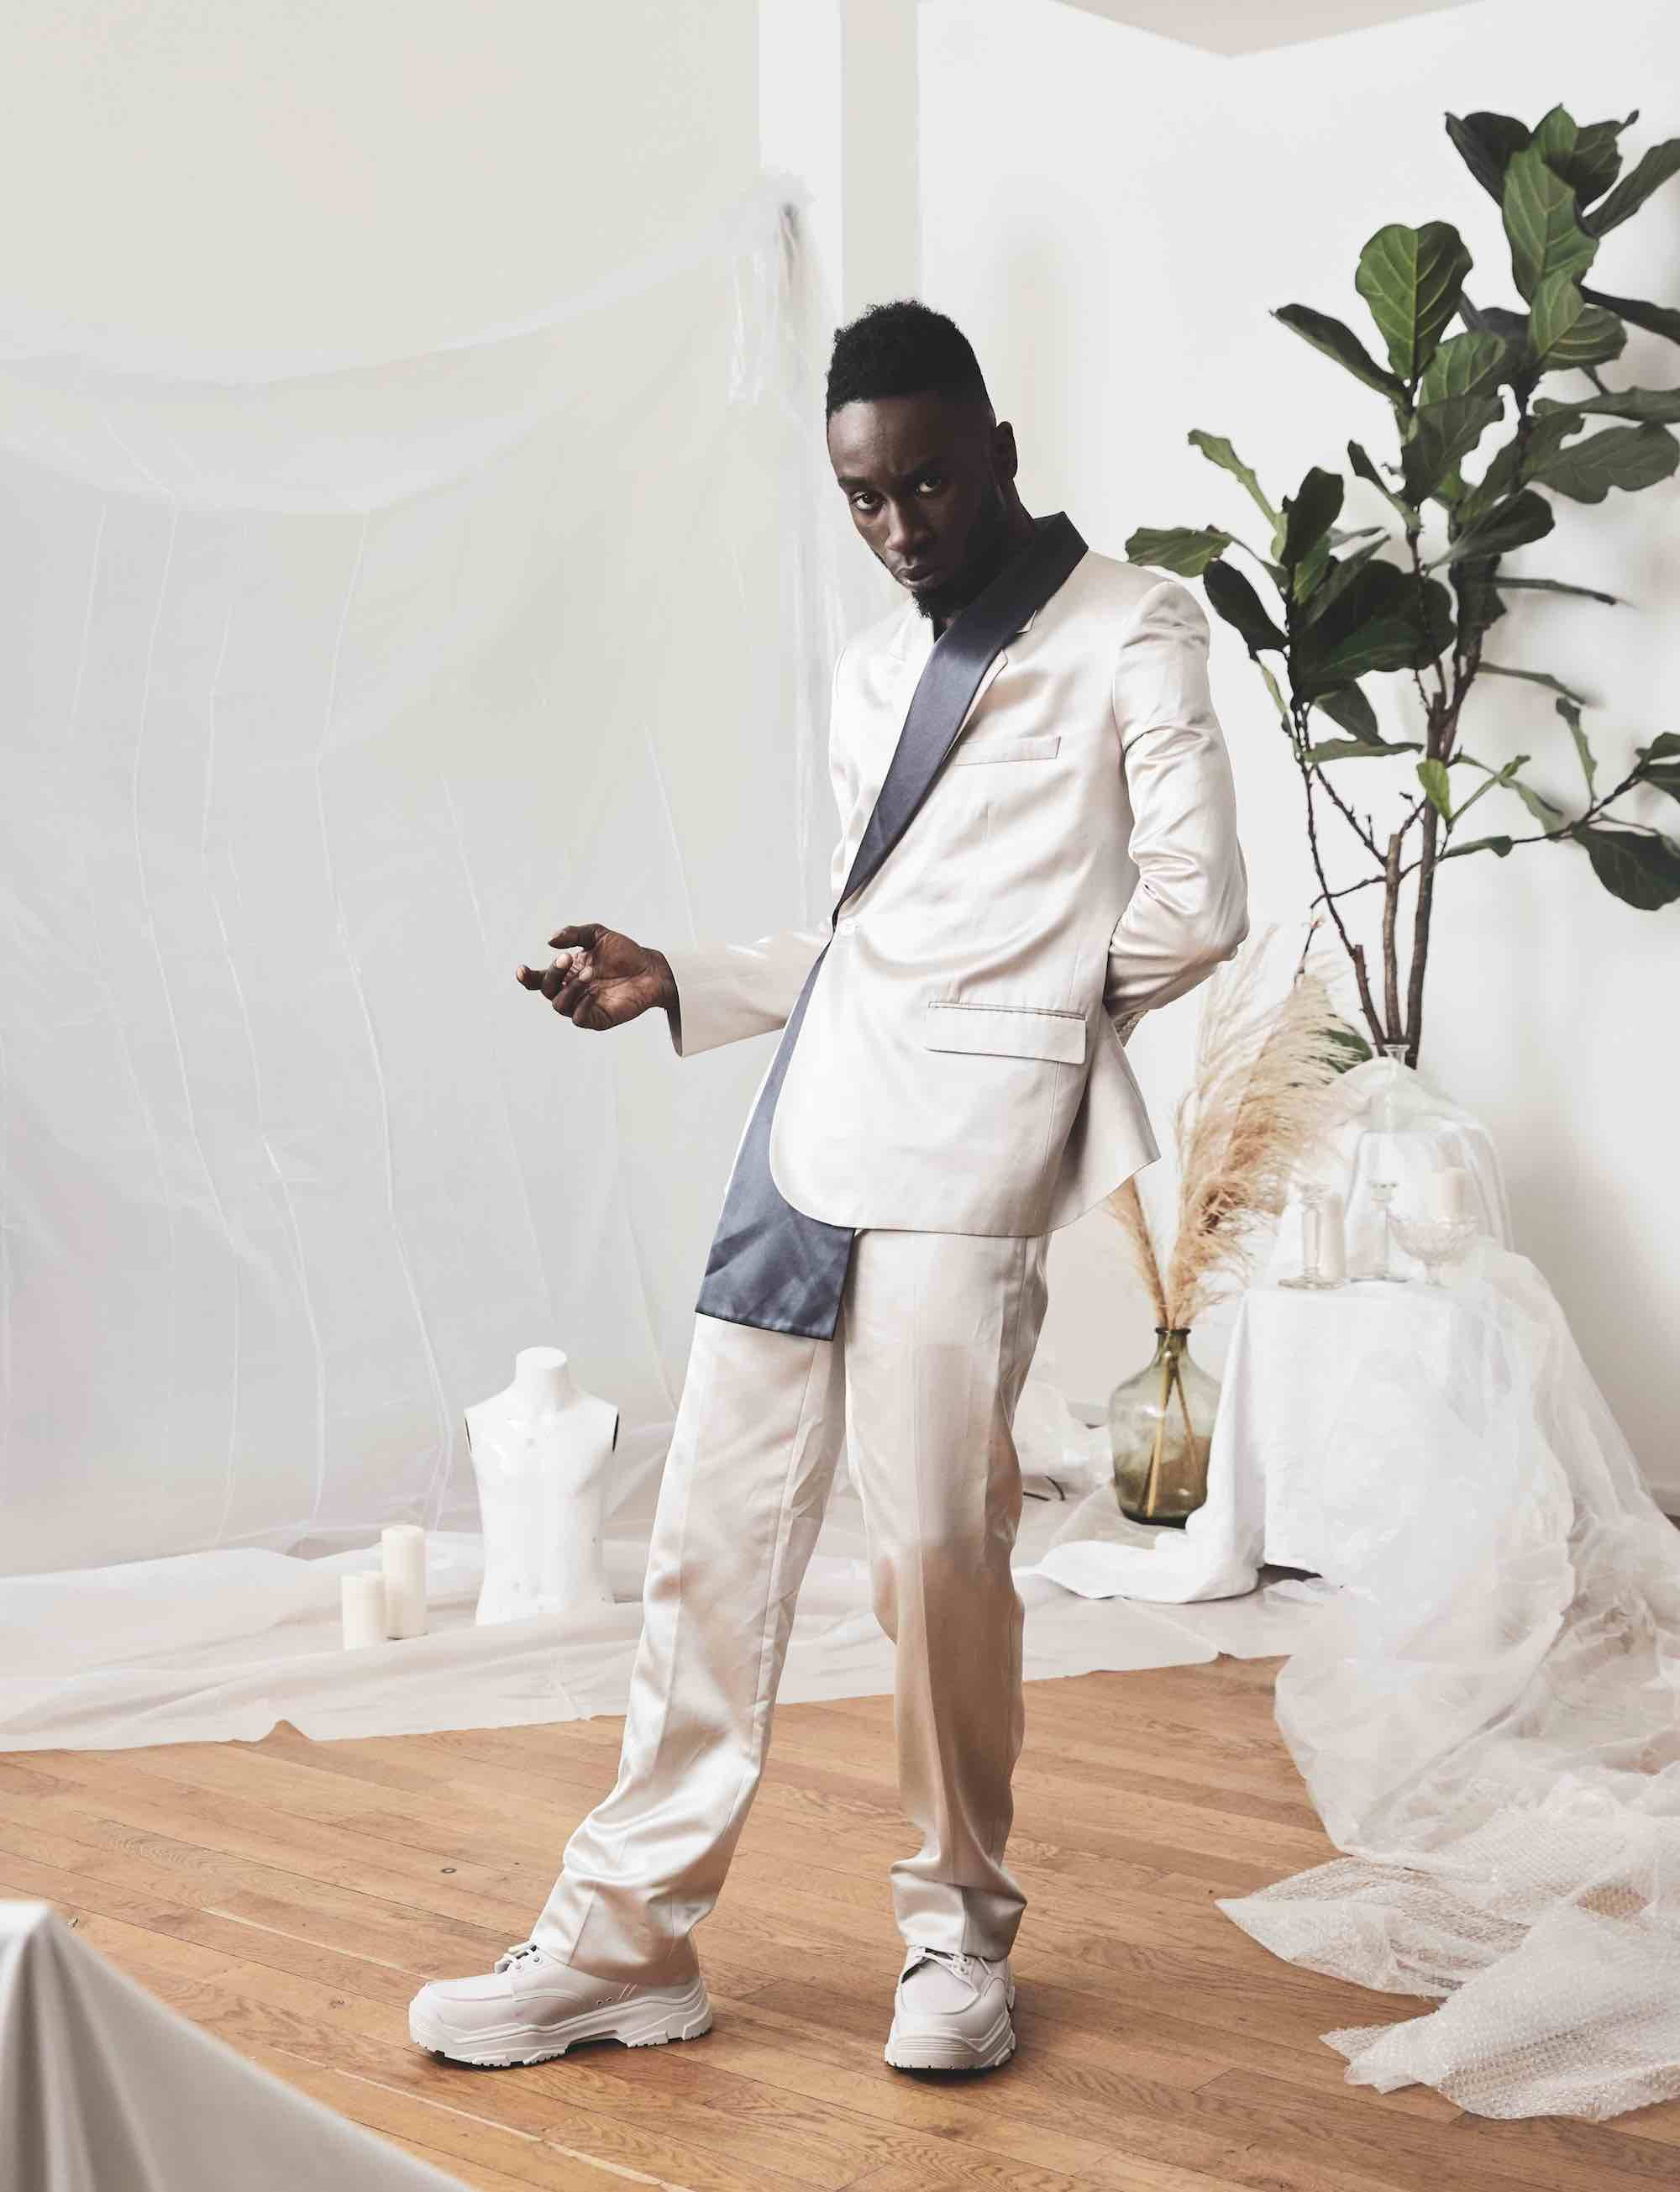 Kojey Radical for the Winter issue of Wonderland wearing white